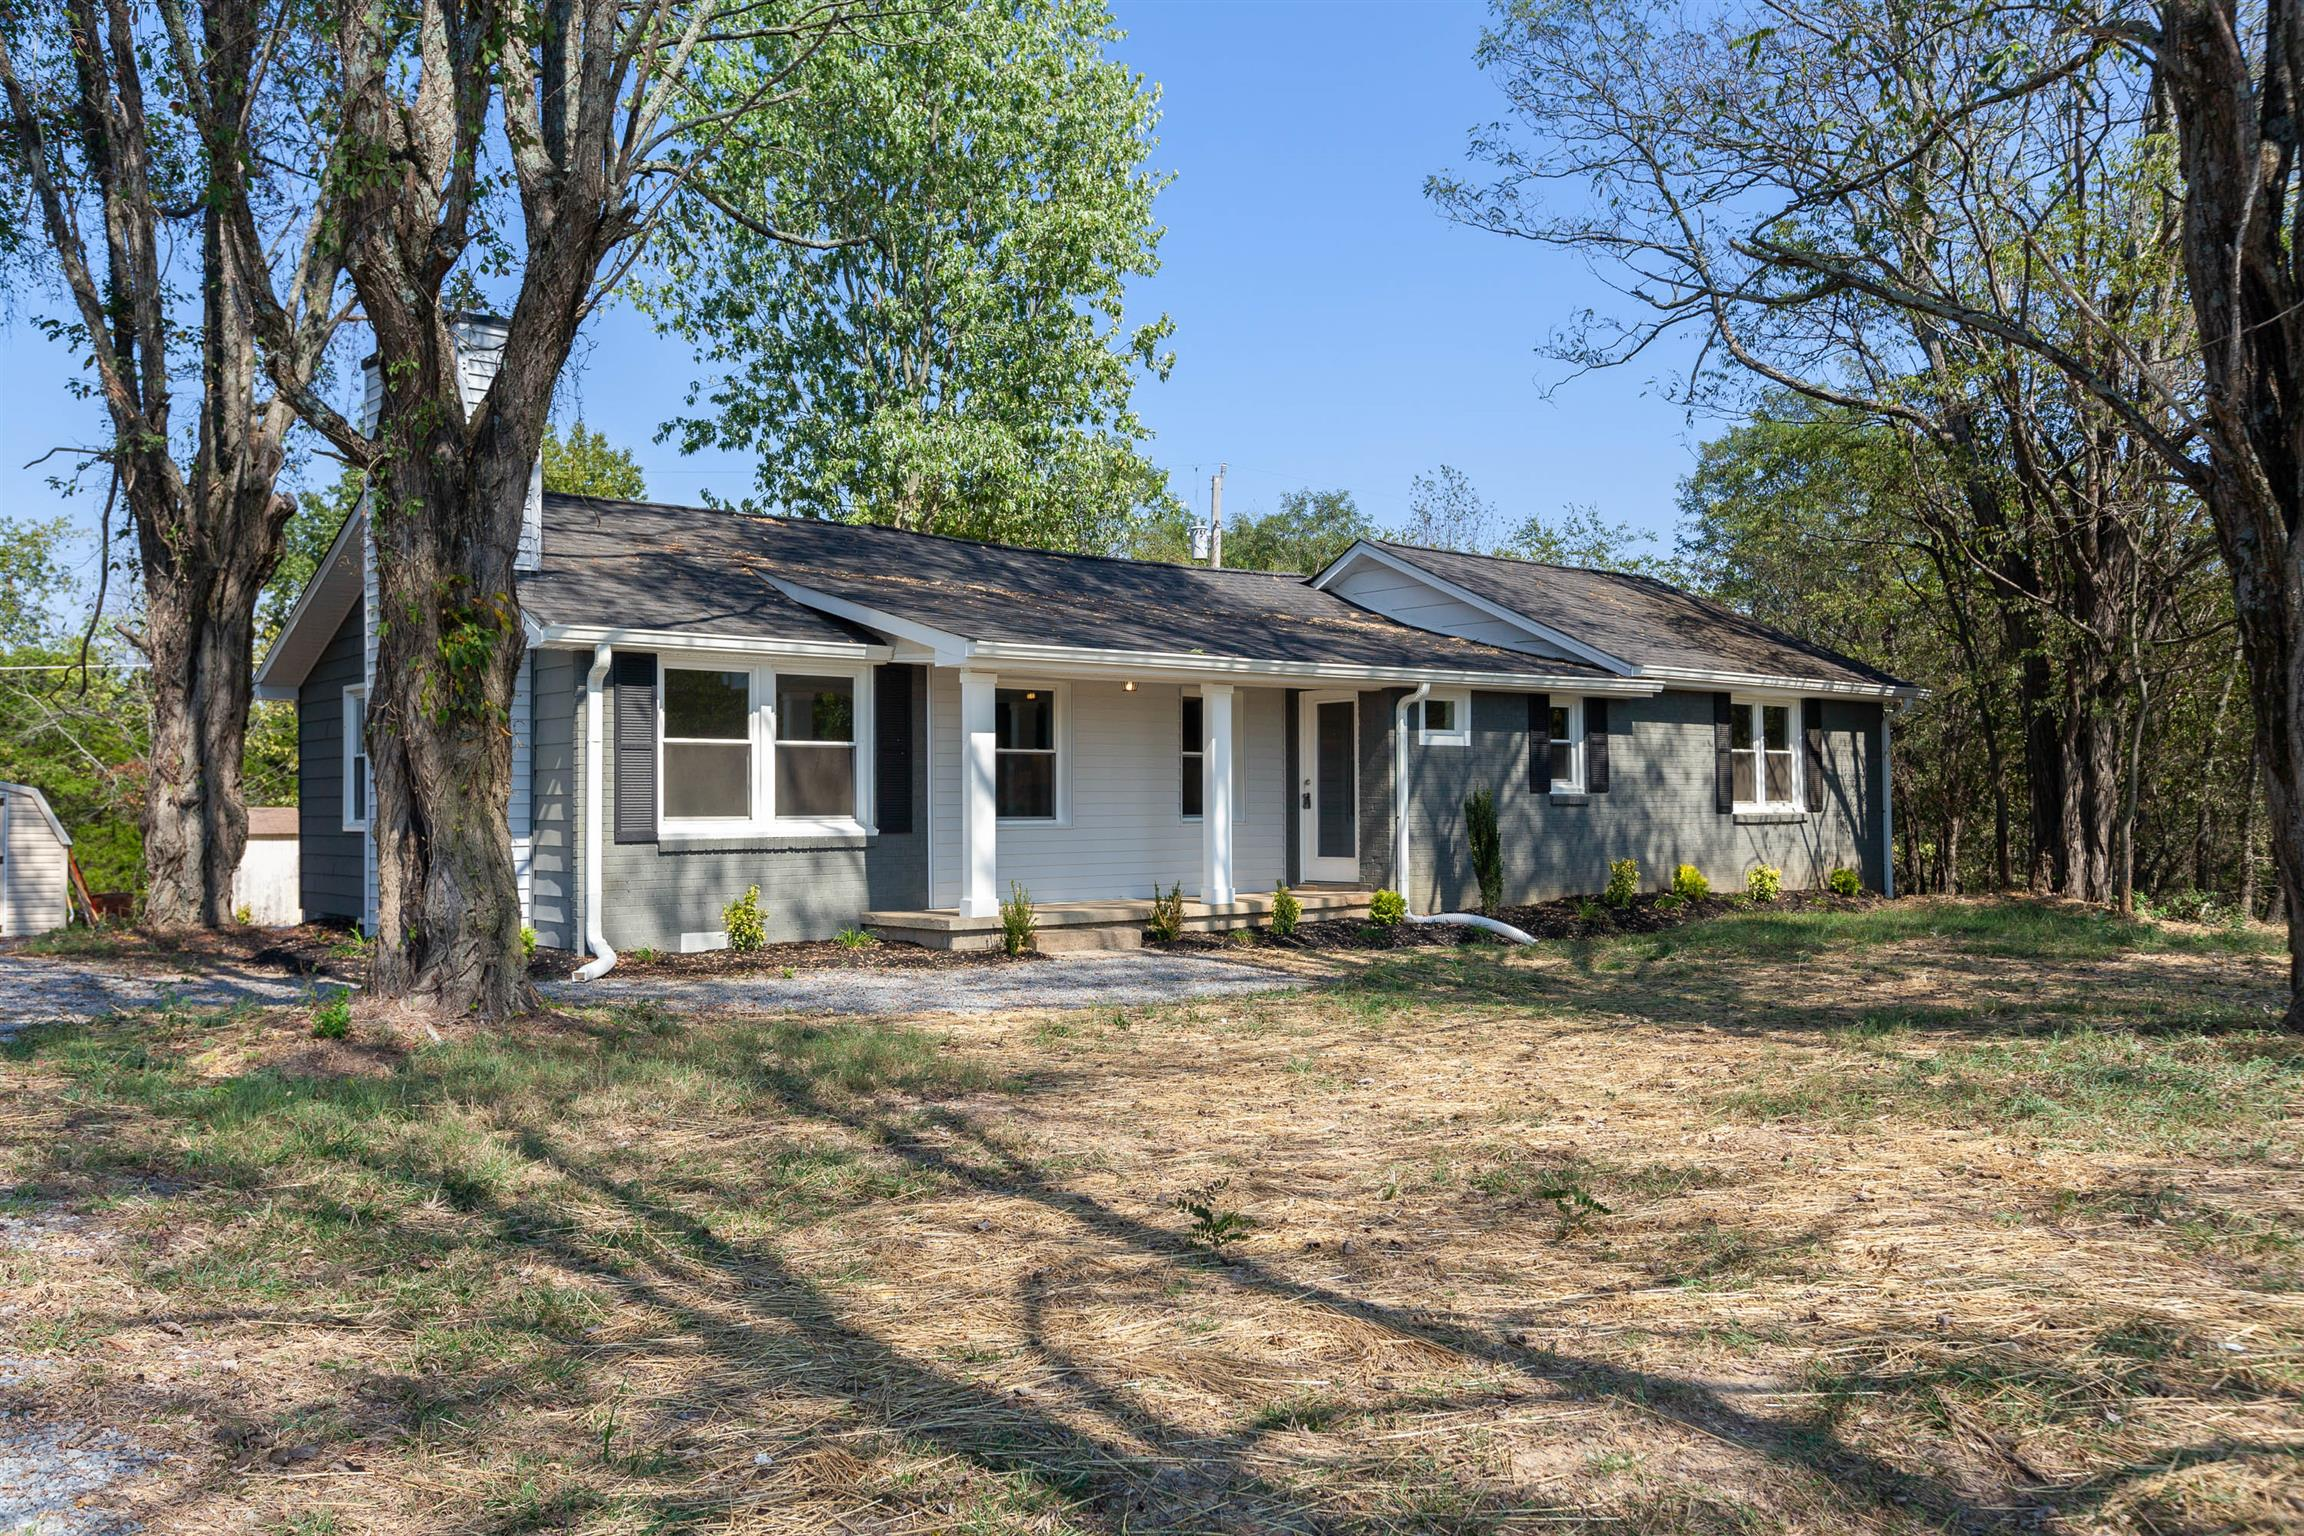 310 Tom Link Rd, Cottontown, TN 37048 - Cottontown, TN real estate listing